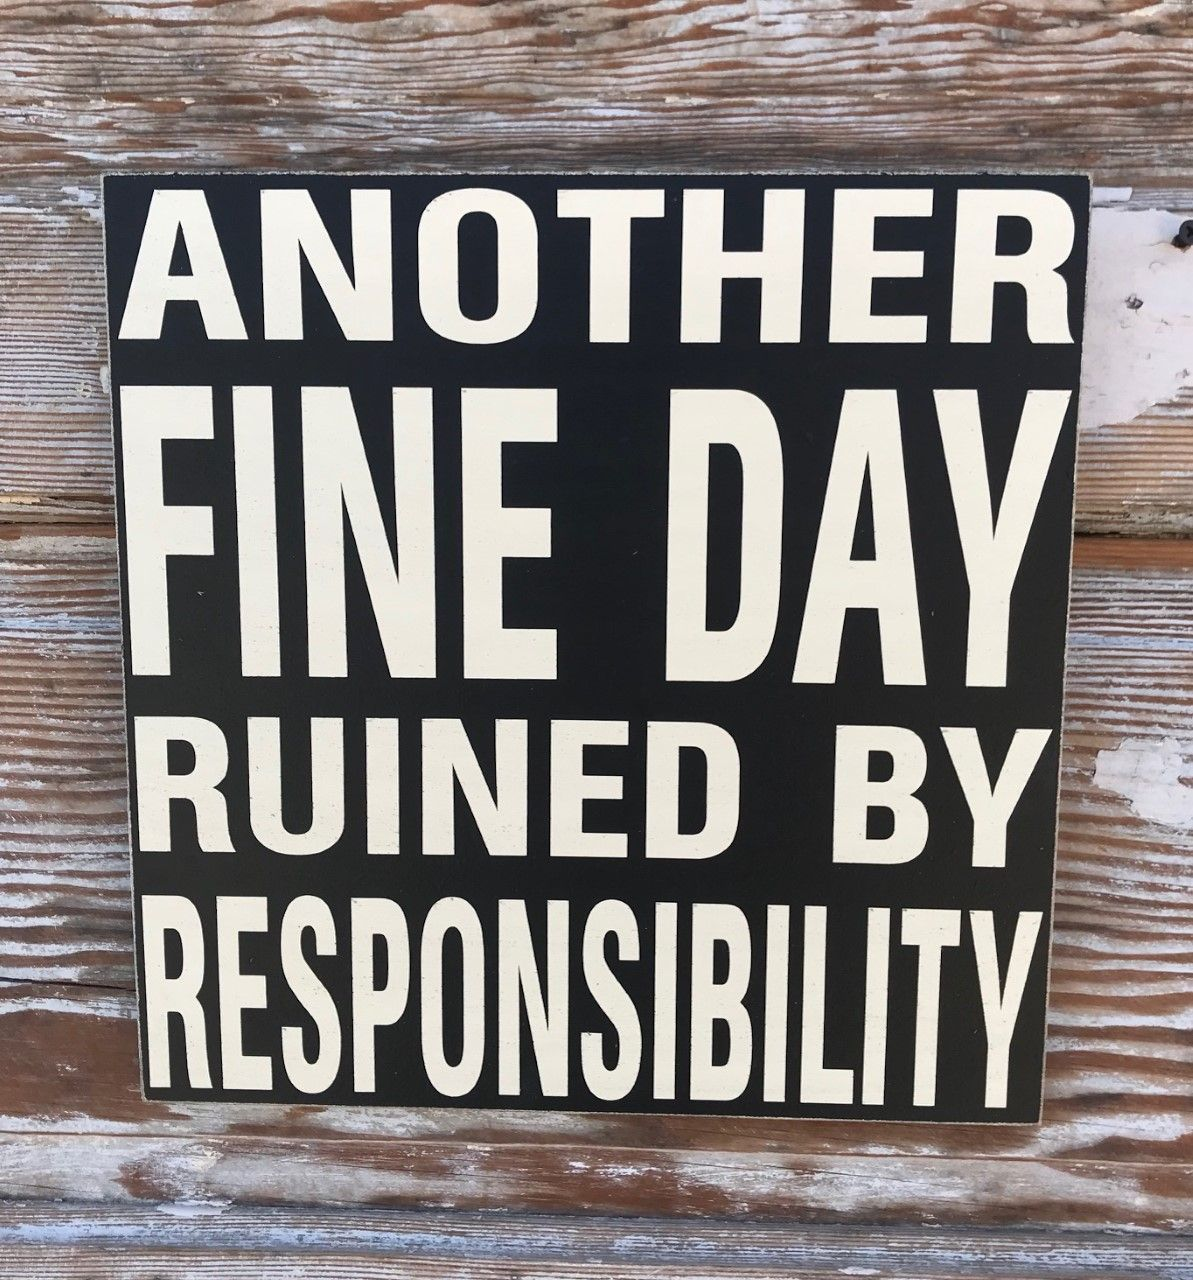 Latest Totally Free Barn Wood Signs Popular Using The Services Of Reclaimed Real Wood Continues To Be Fairly Fav In 2020 Funny Wood Signs Wood Signs Wood Signs Sayings